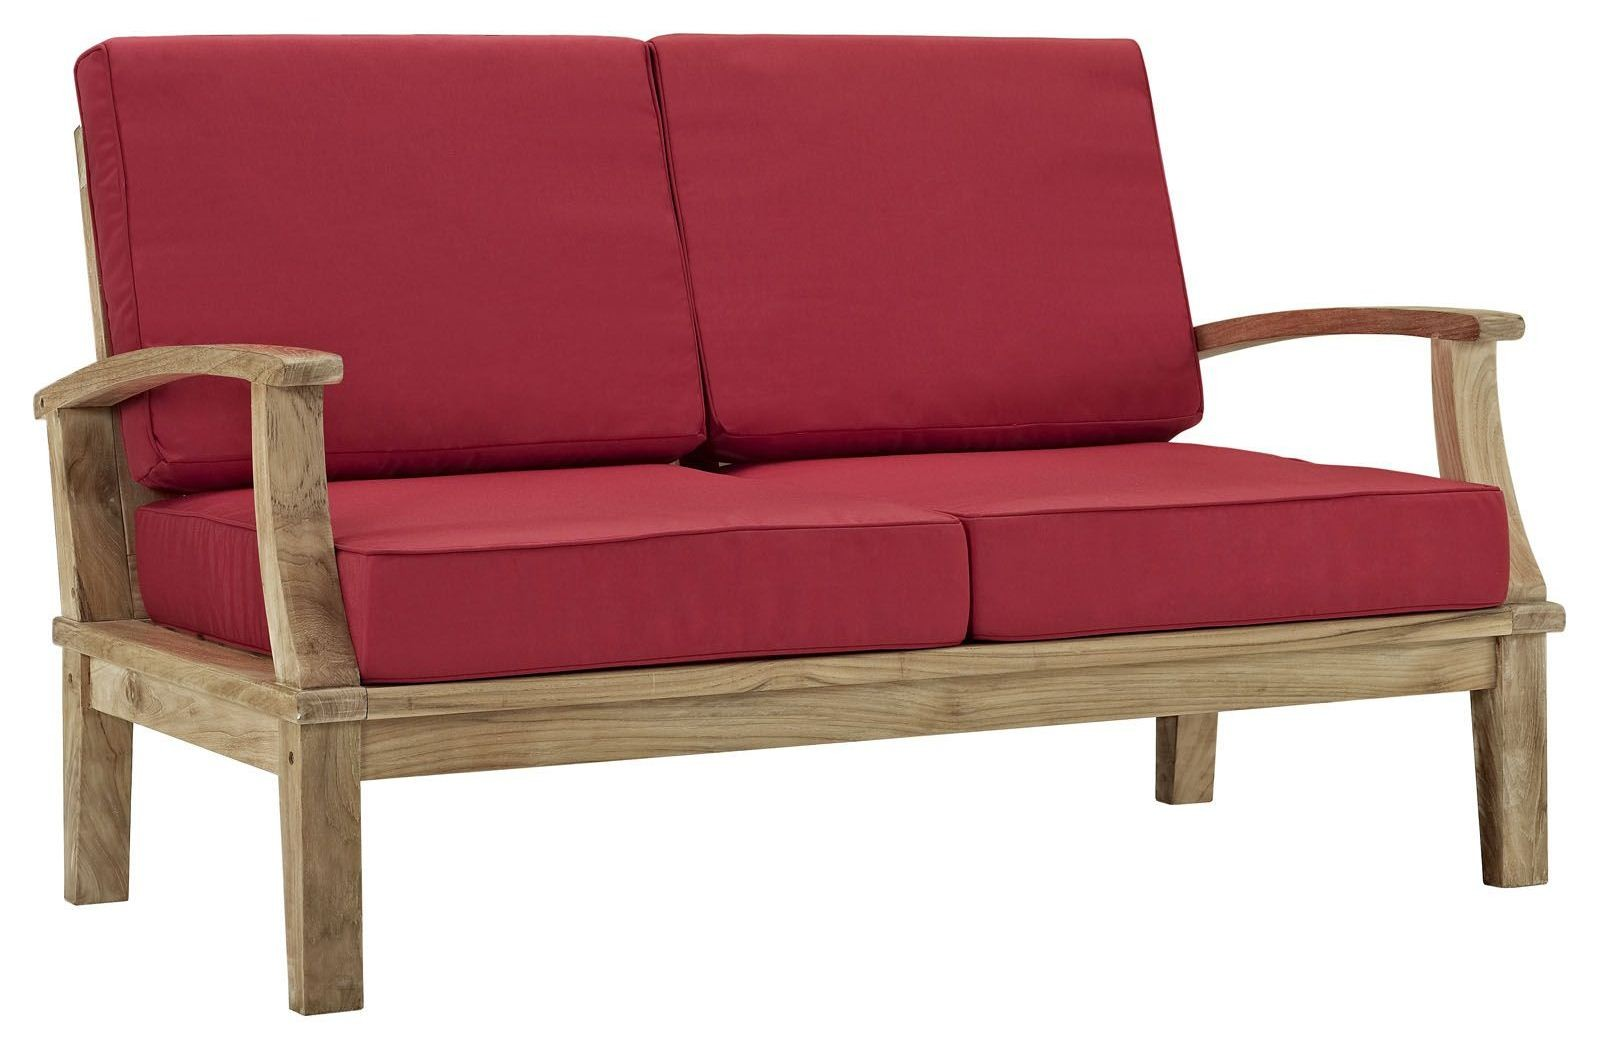 Marina Natural Red Outdoor Patio Teak Loveseat From Renegade Eei 1144 Coleman Furniture